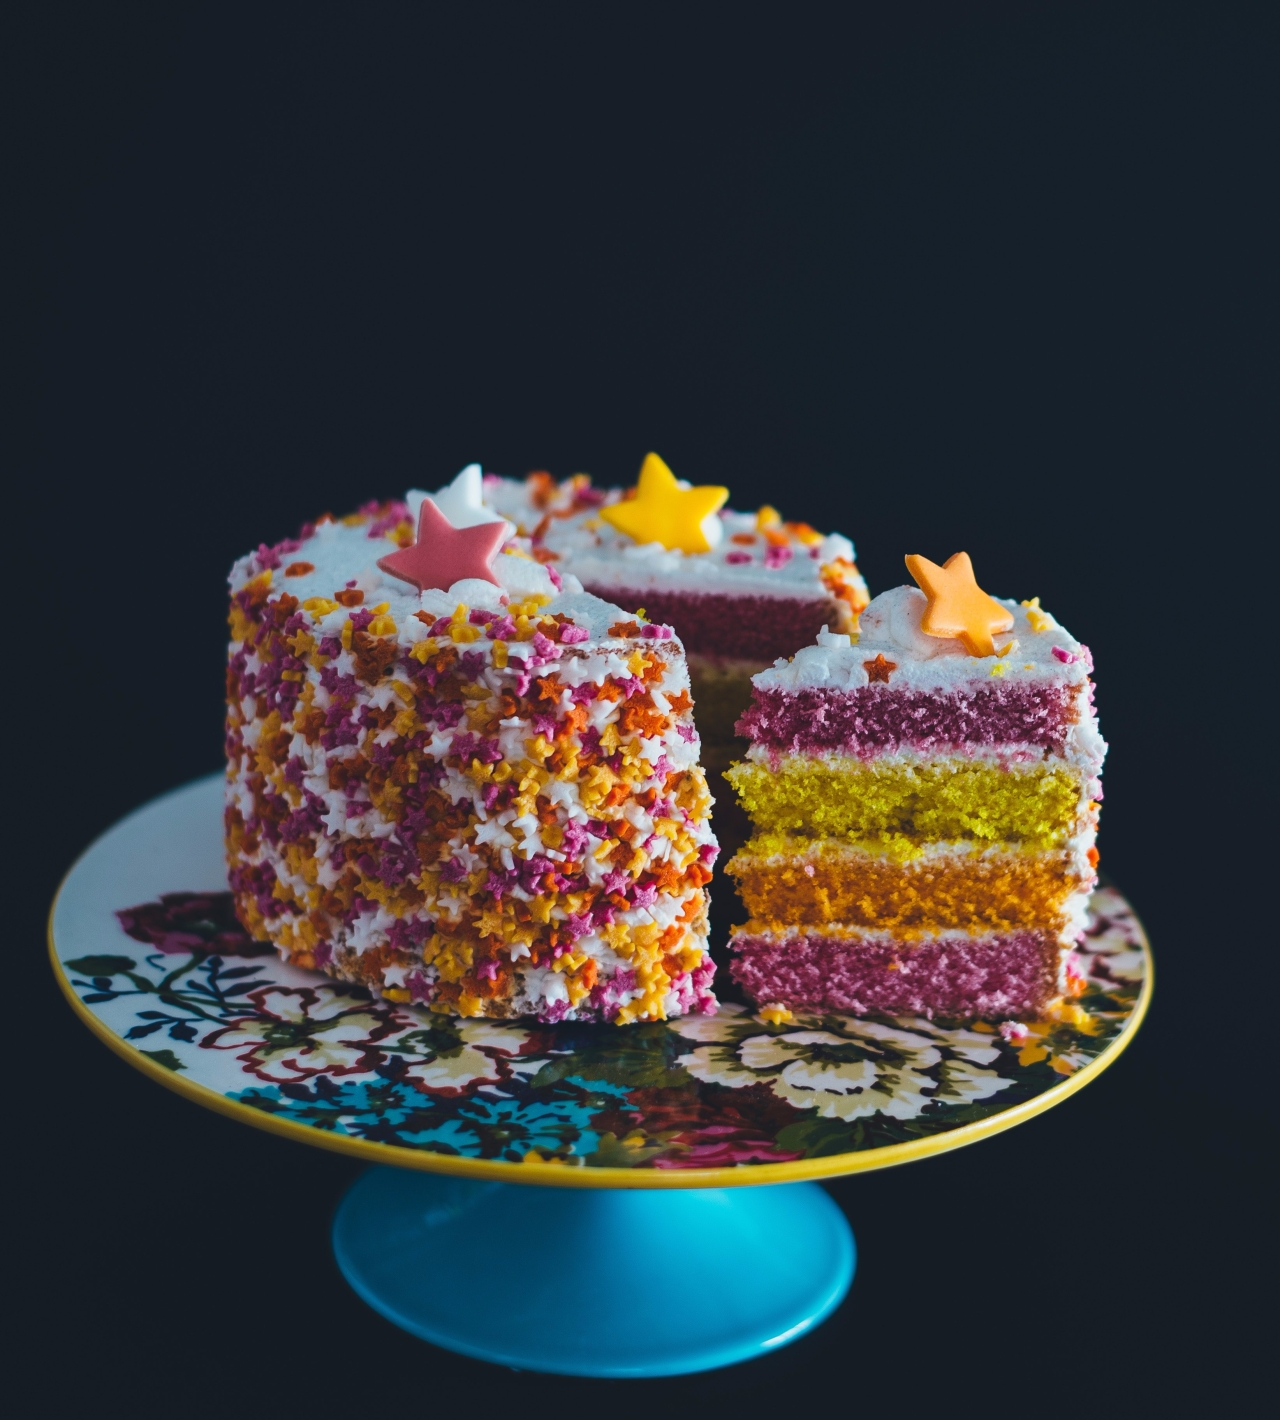 Homemade birthday cake from a cookbook